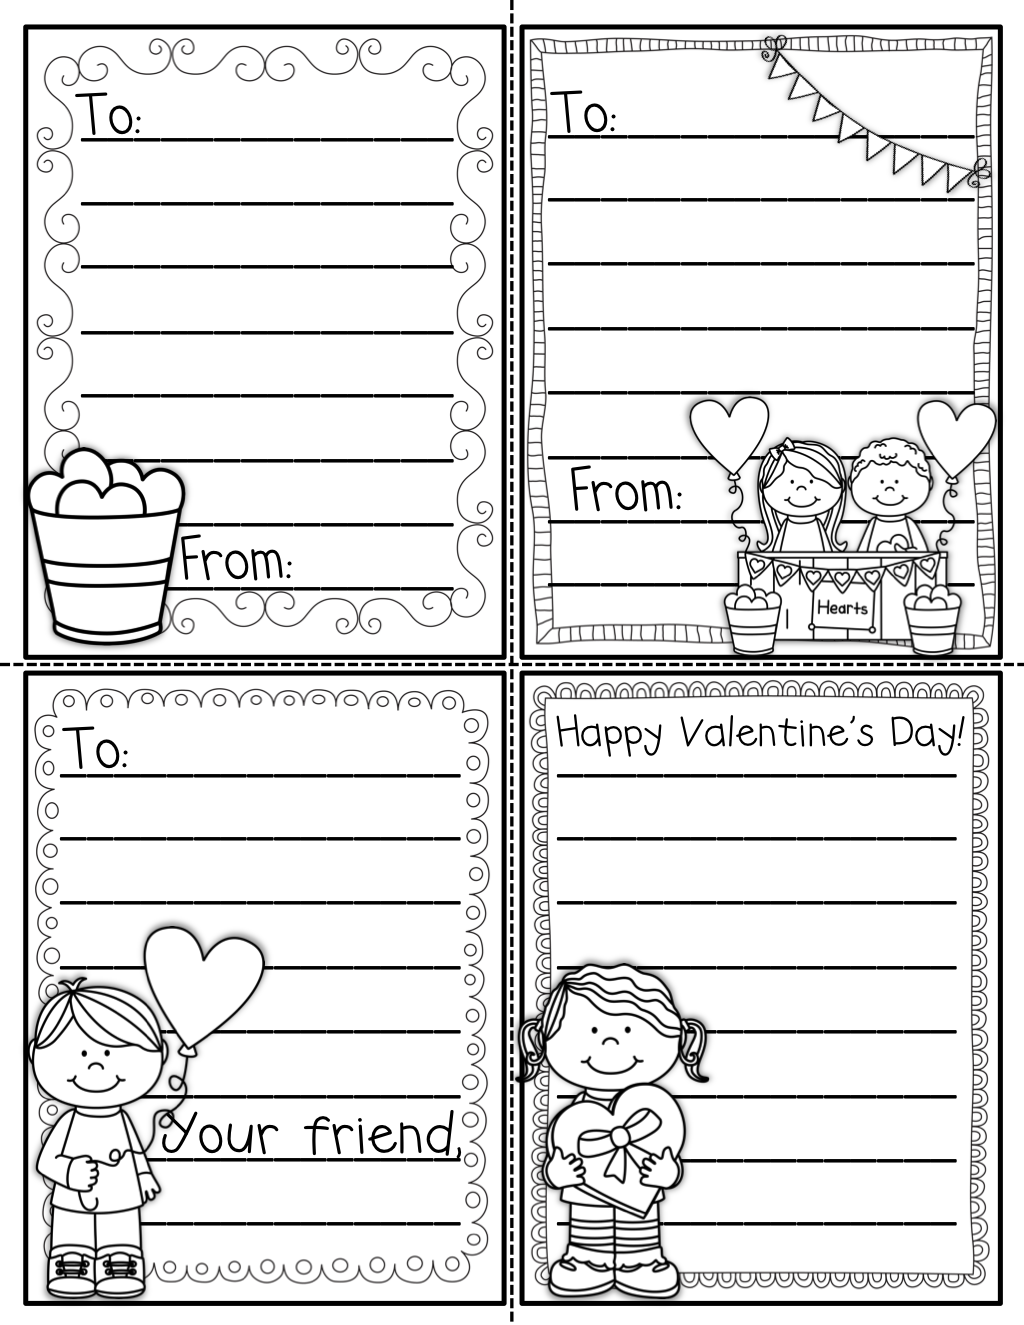 389dbbb26b6cf3941cd62f35a6e85dc0 Valentine Letter Template Kindergarten on valentines owl card template, kindergarten easter egg template, kindergarten valentine's, kindergarten spring template,